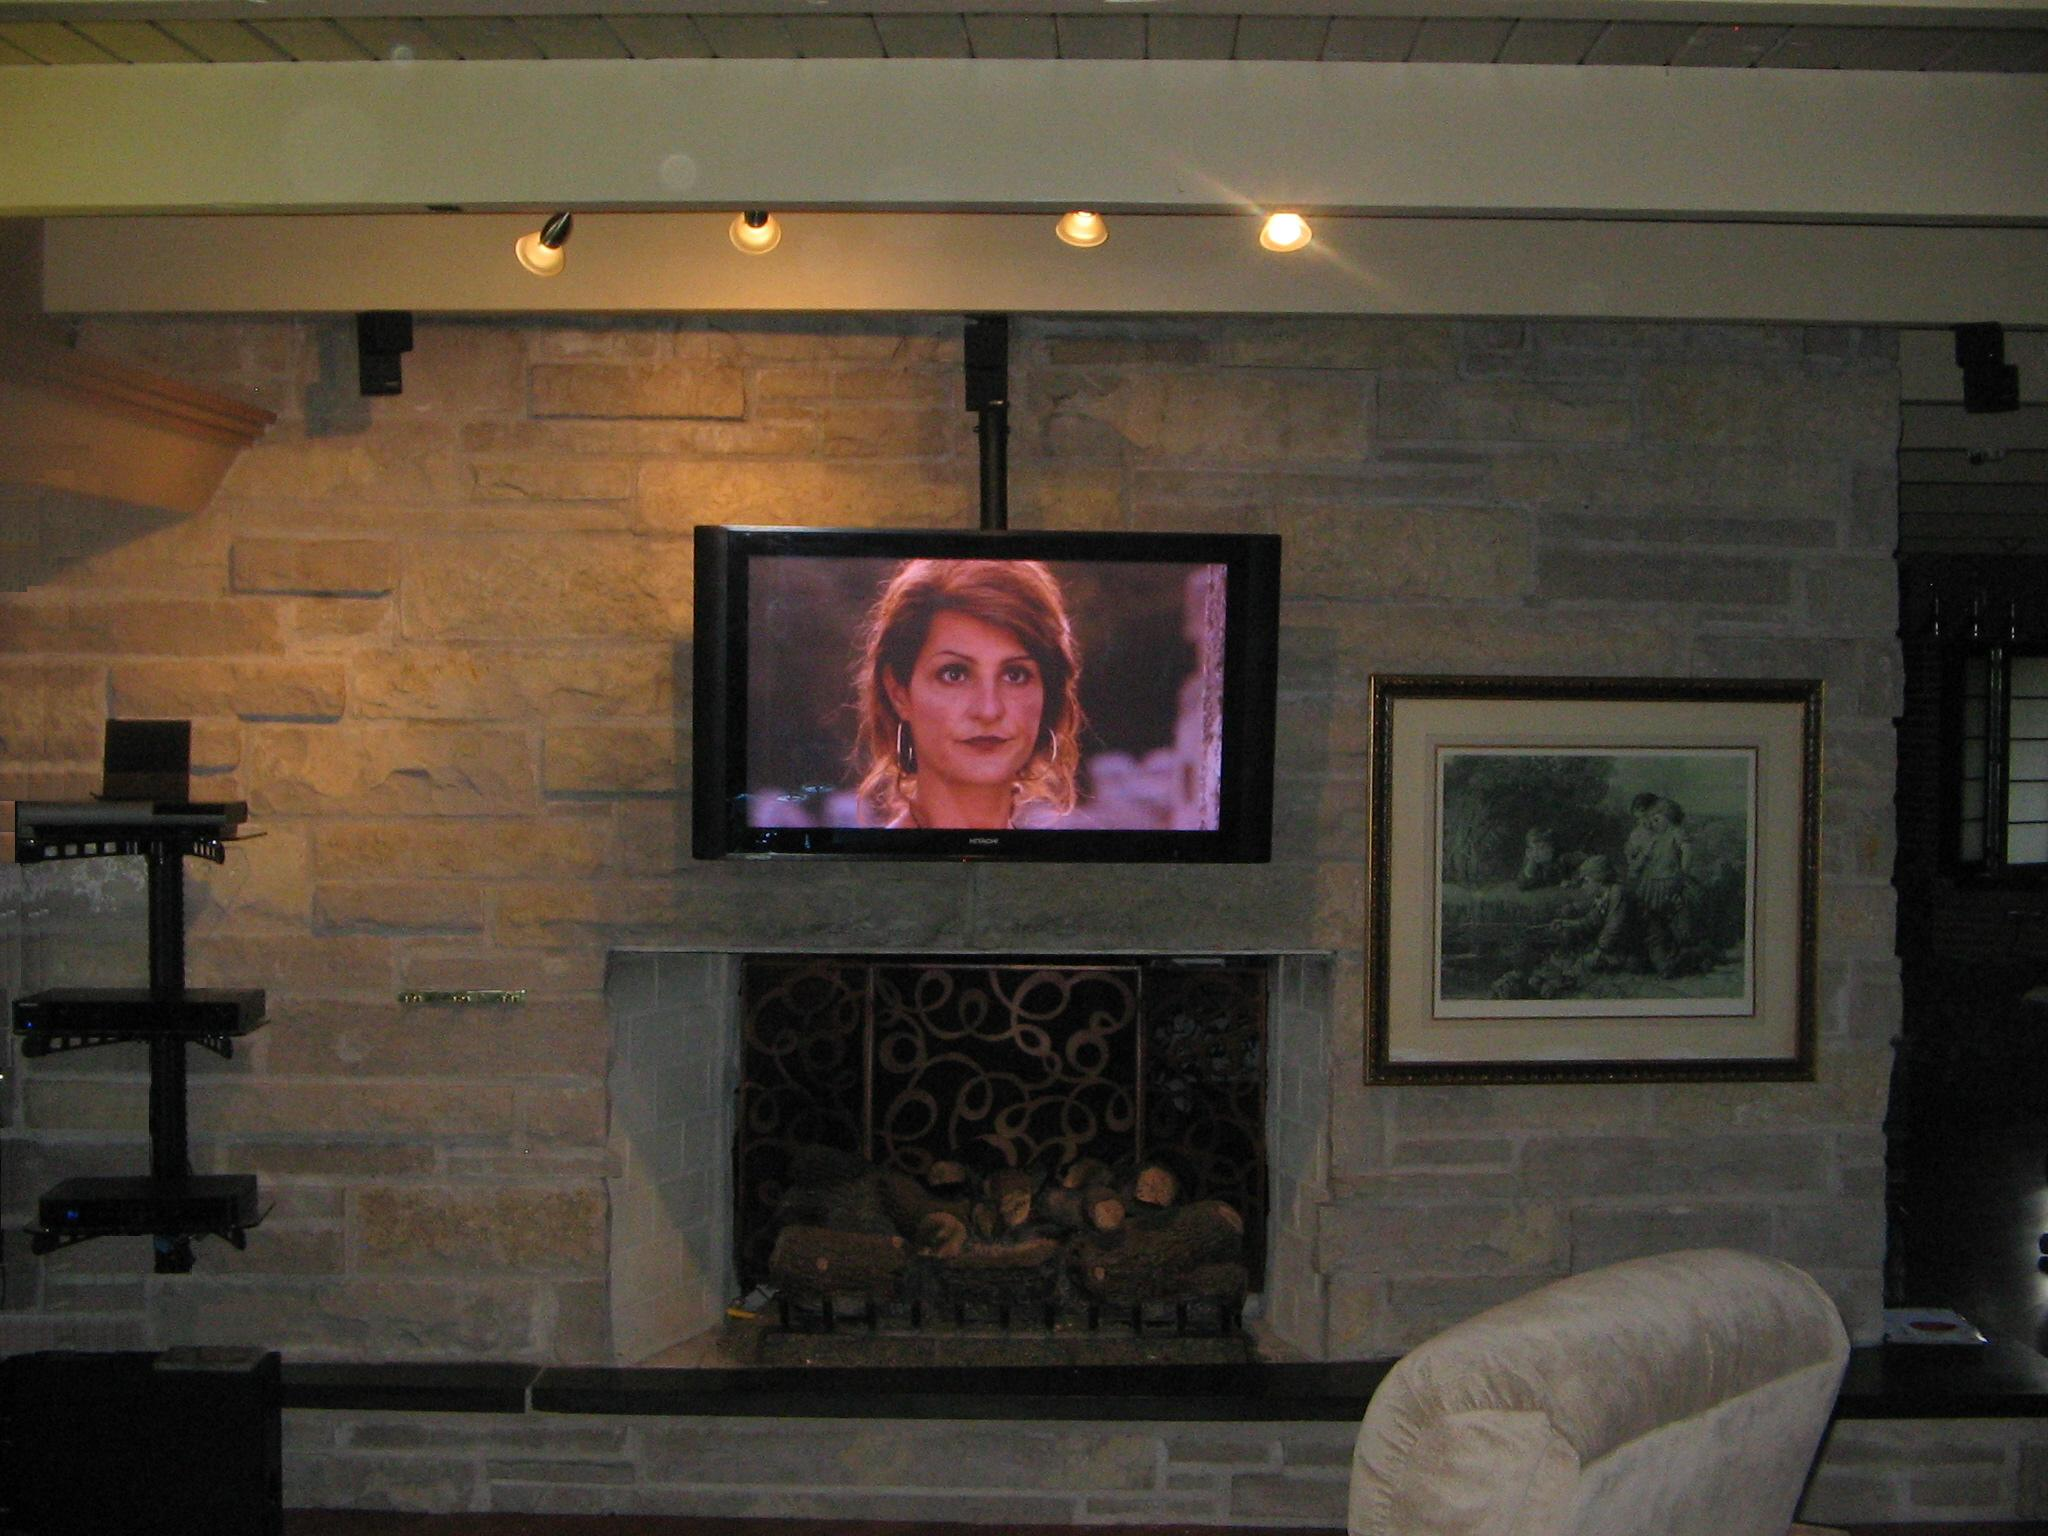 Plasma Hdtv Mounted In Front Of The Fireplace Css